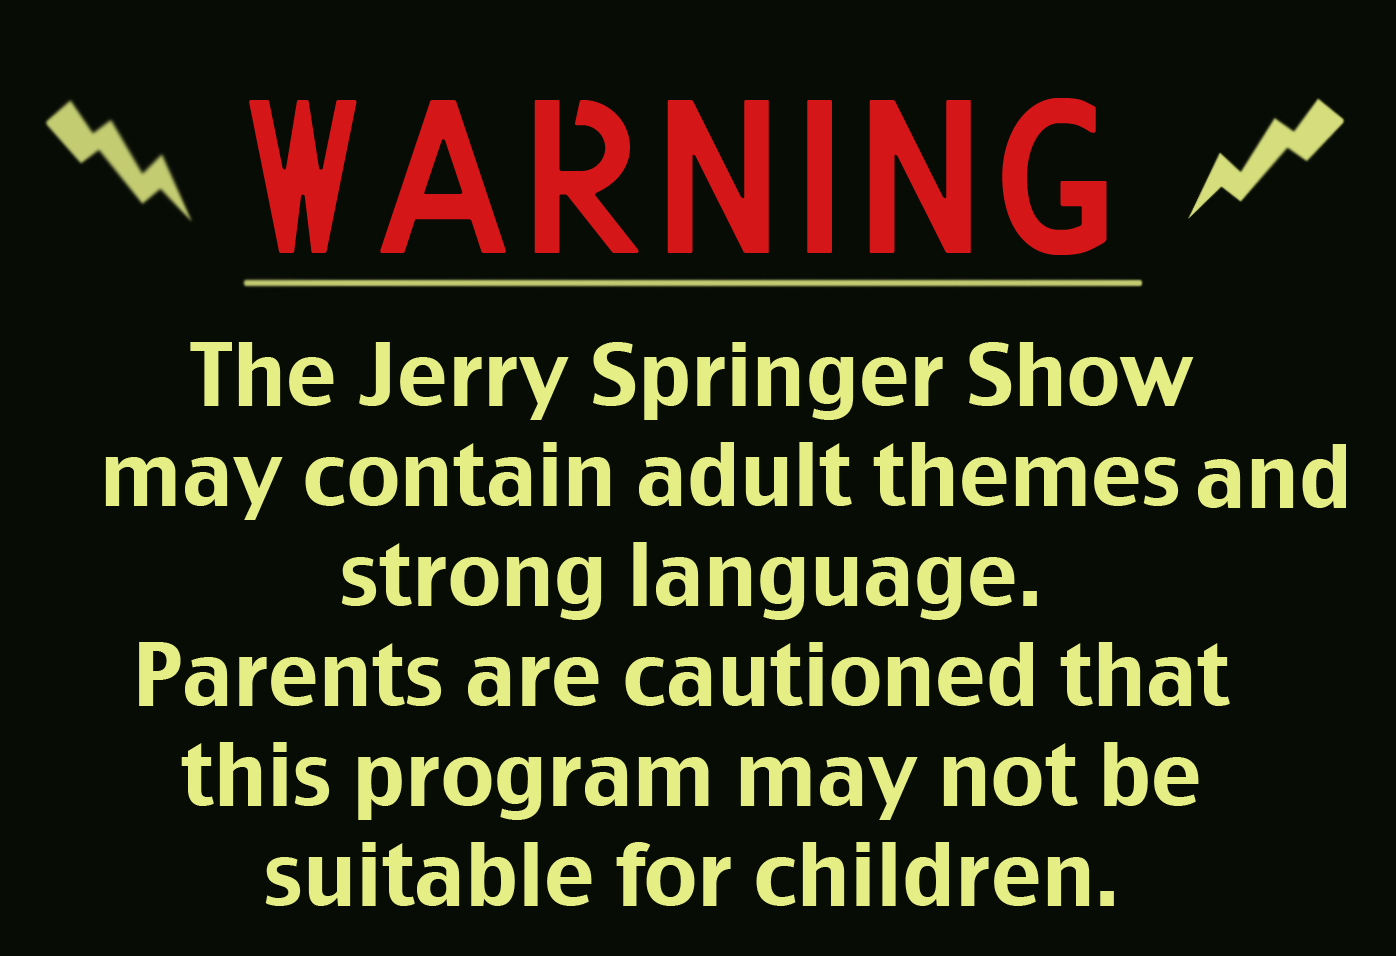 jerrywarning no typo.jpg